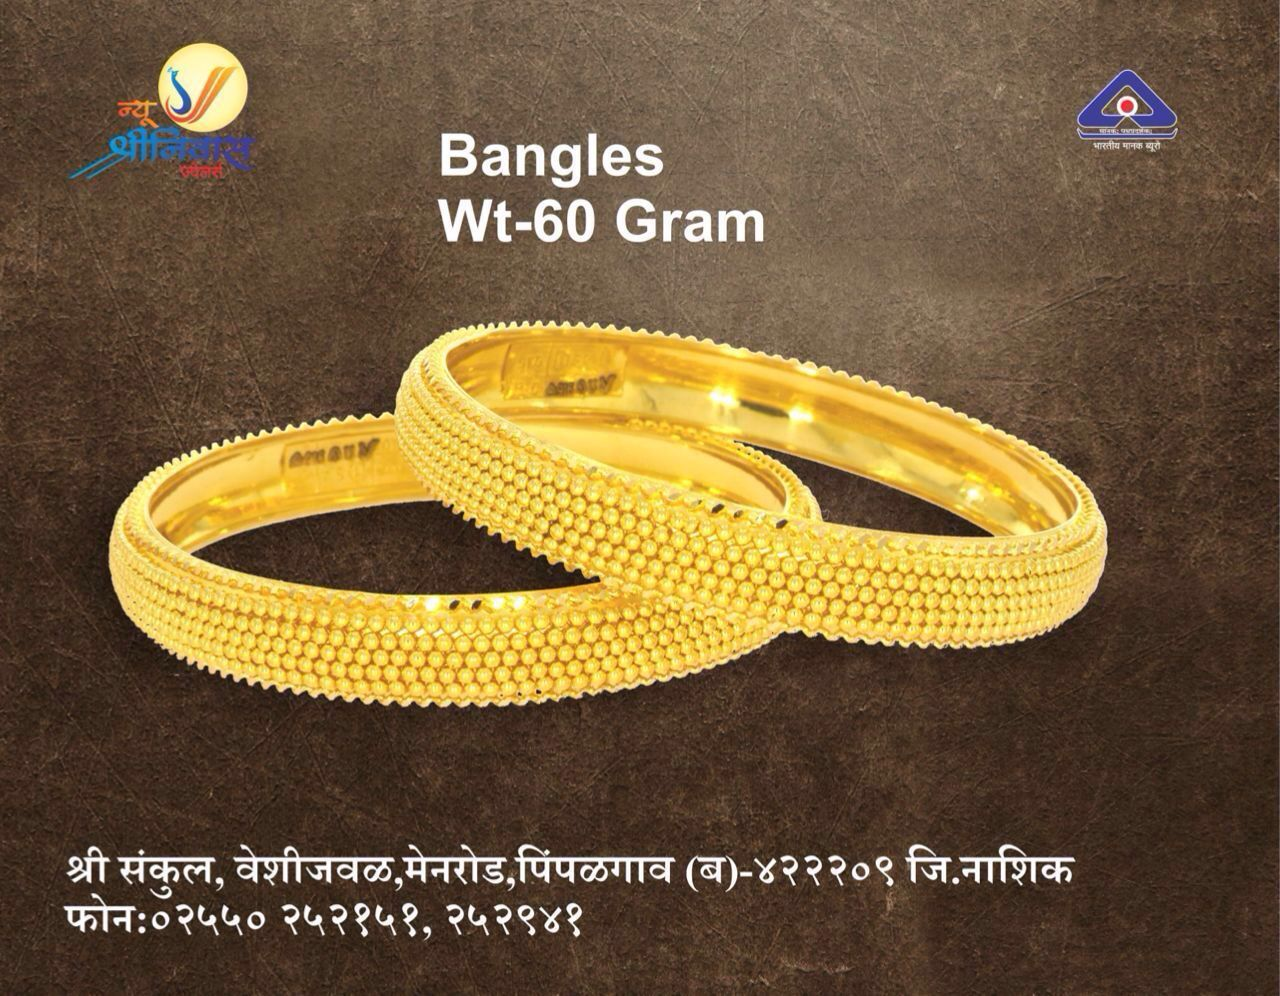 Pin by Shriniwas Jwellers on Bangles Traditional jewelry